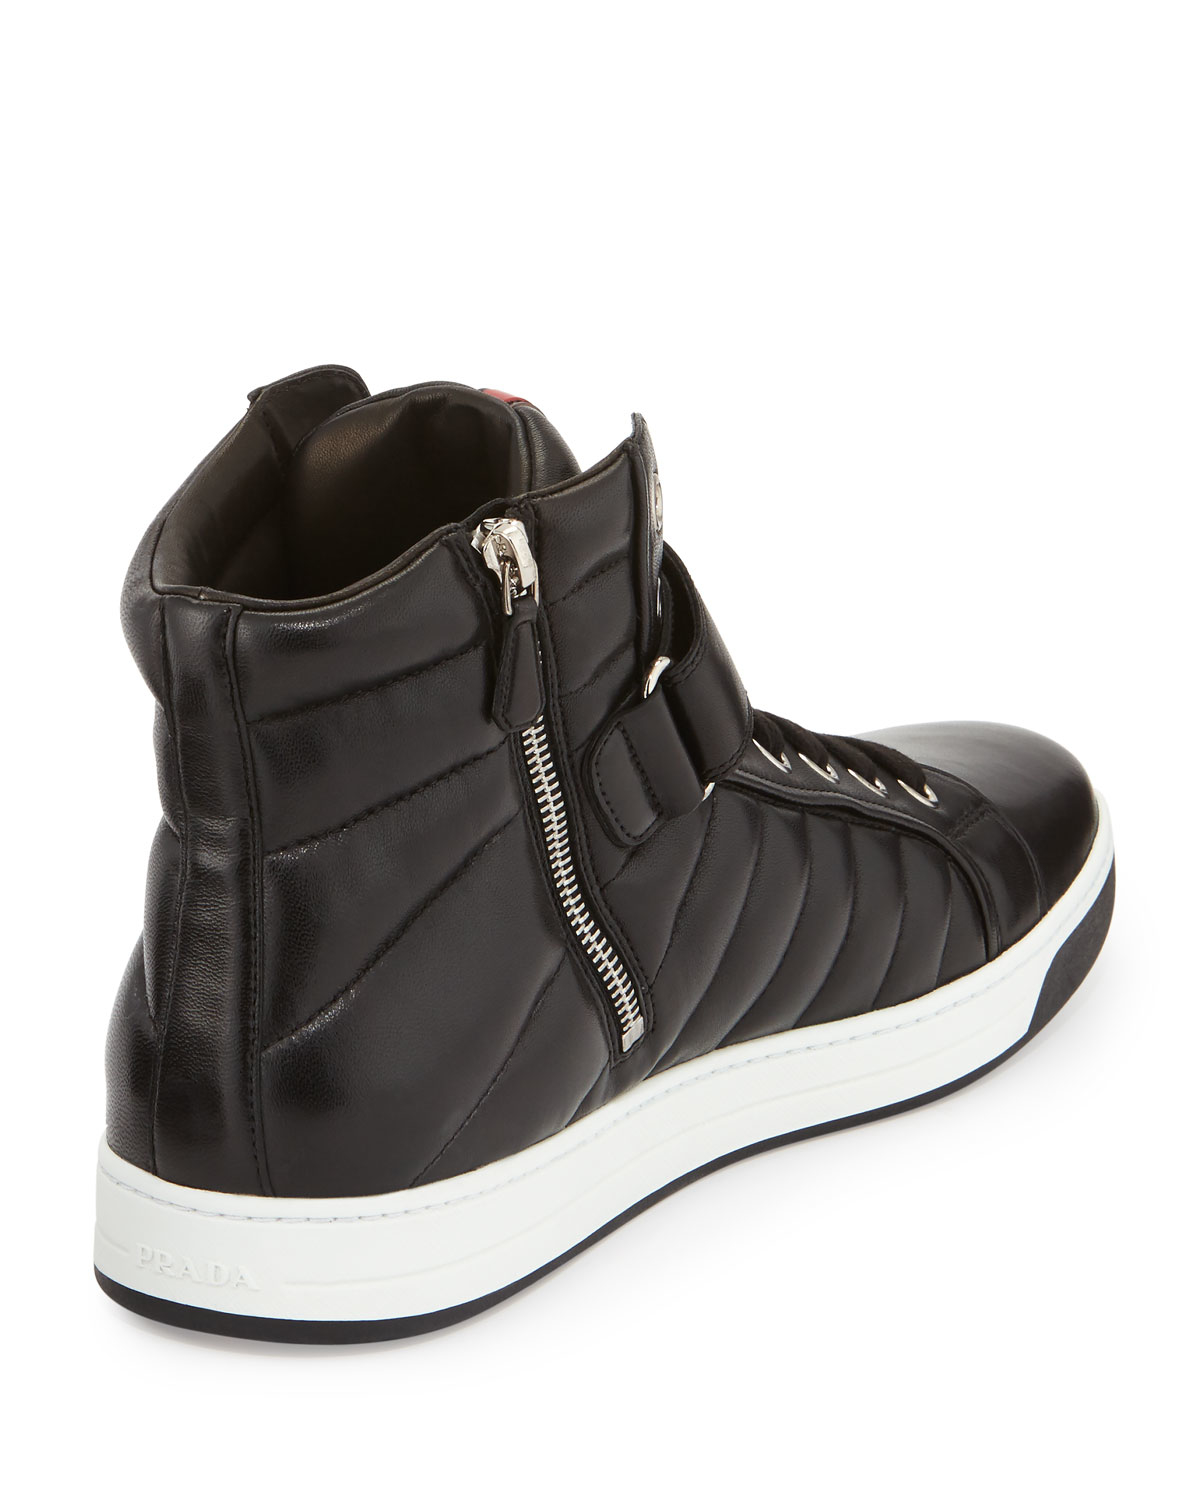 ... amazon lyst prada quilted leather high top sneakers in black for men  ec143 eb043 9ec3f06e56b6a